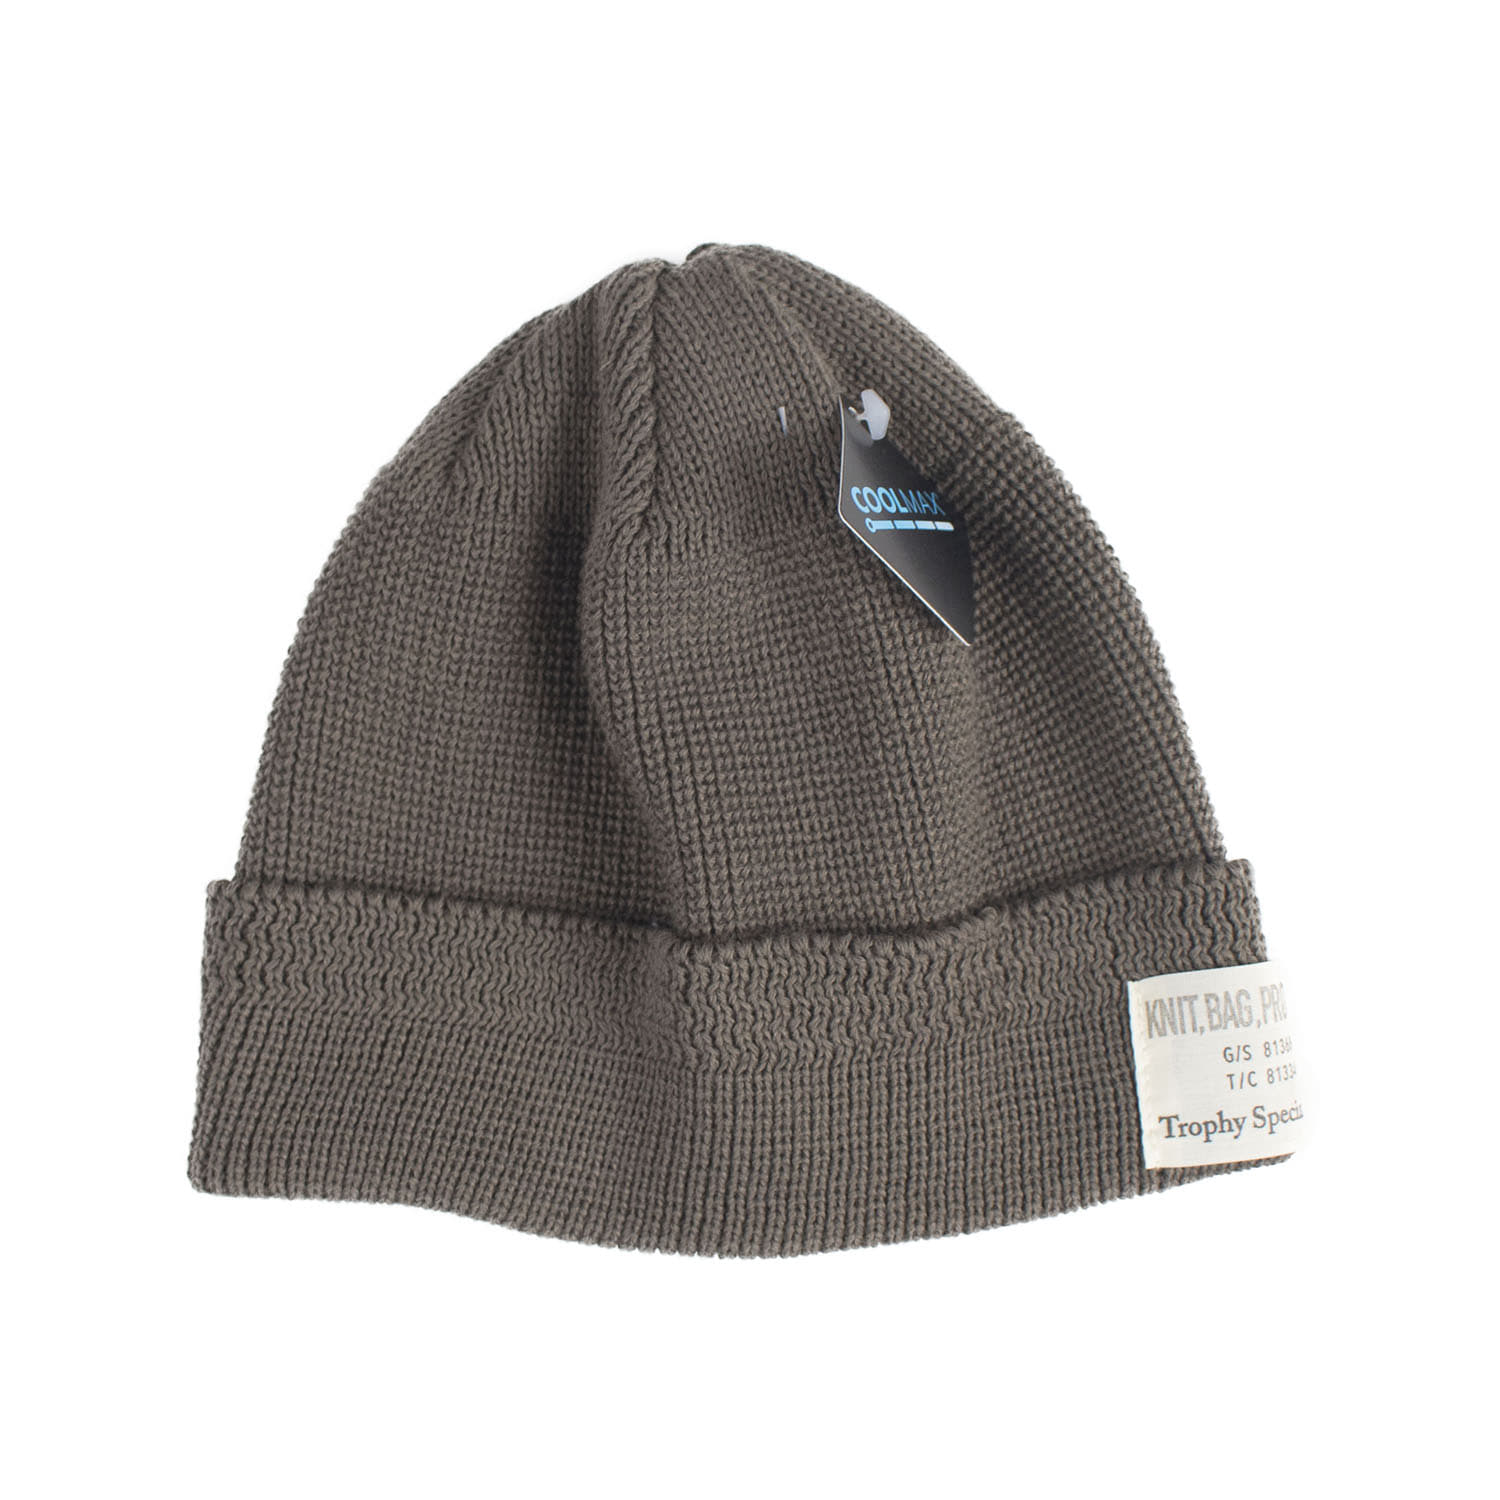 Trophy Clothing Cool Max Watchman Cap (Dark Olive)